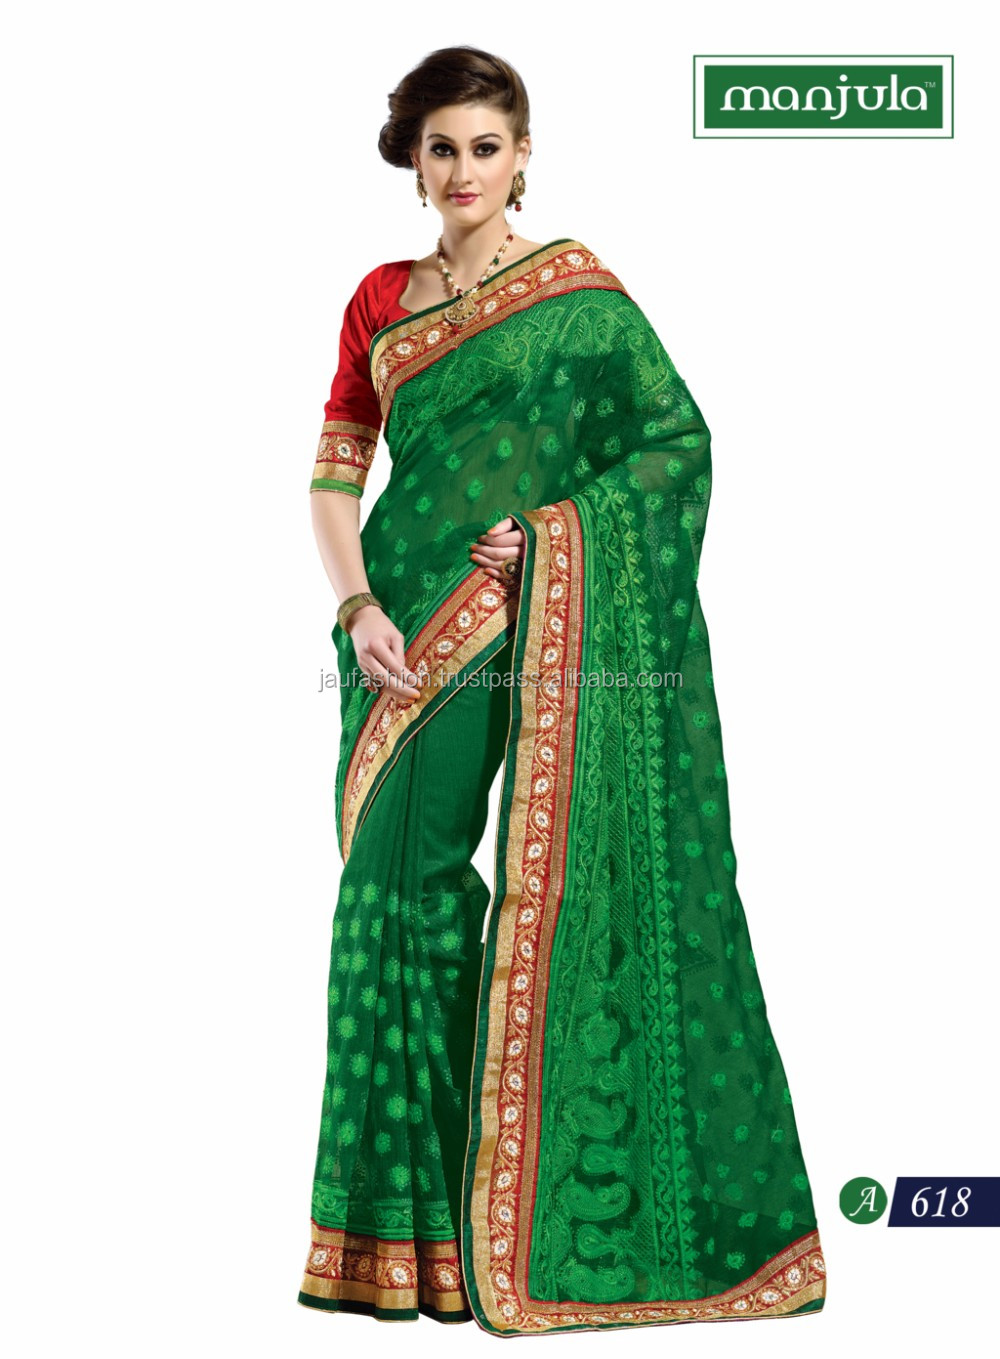 Cheap Sarees Uk / London Saree Shops / Wholesale Price Online ...